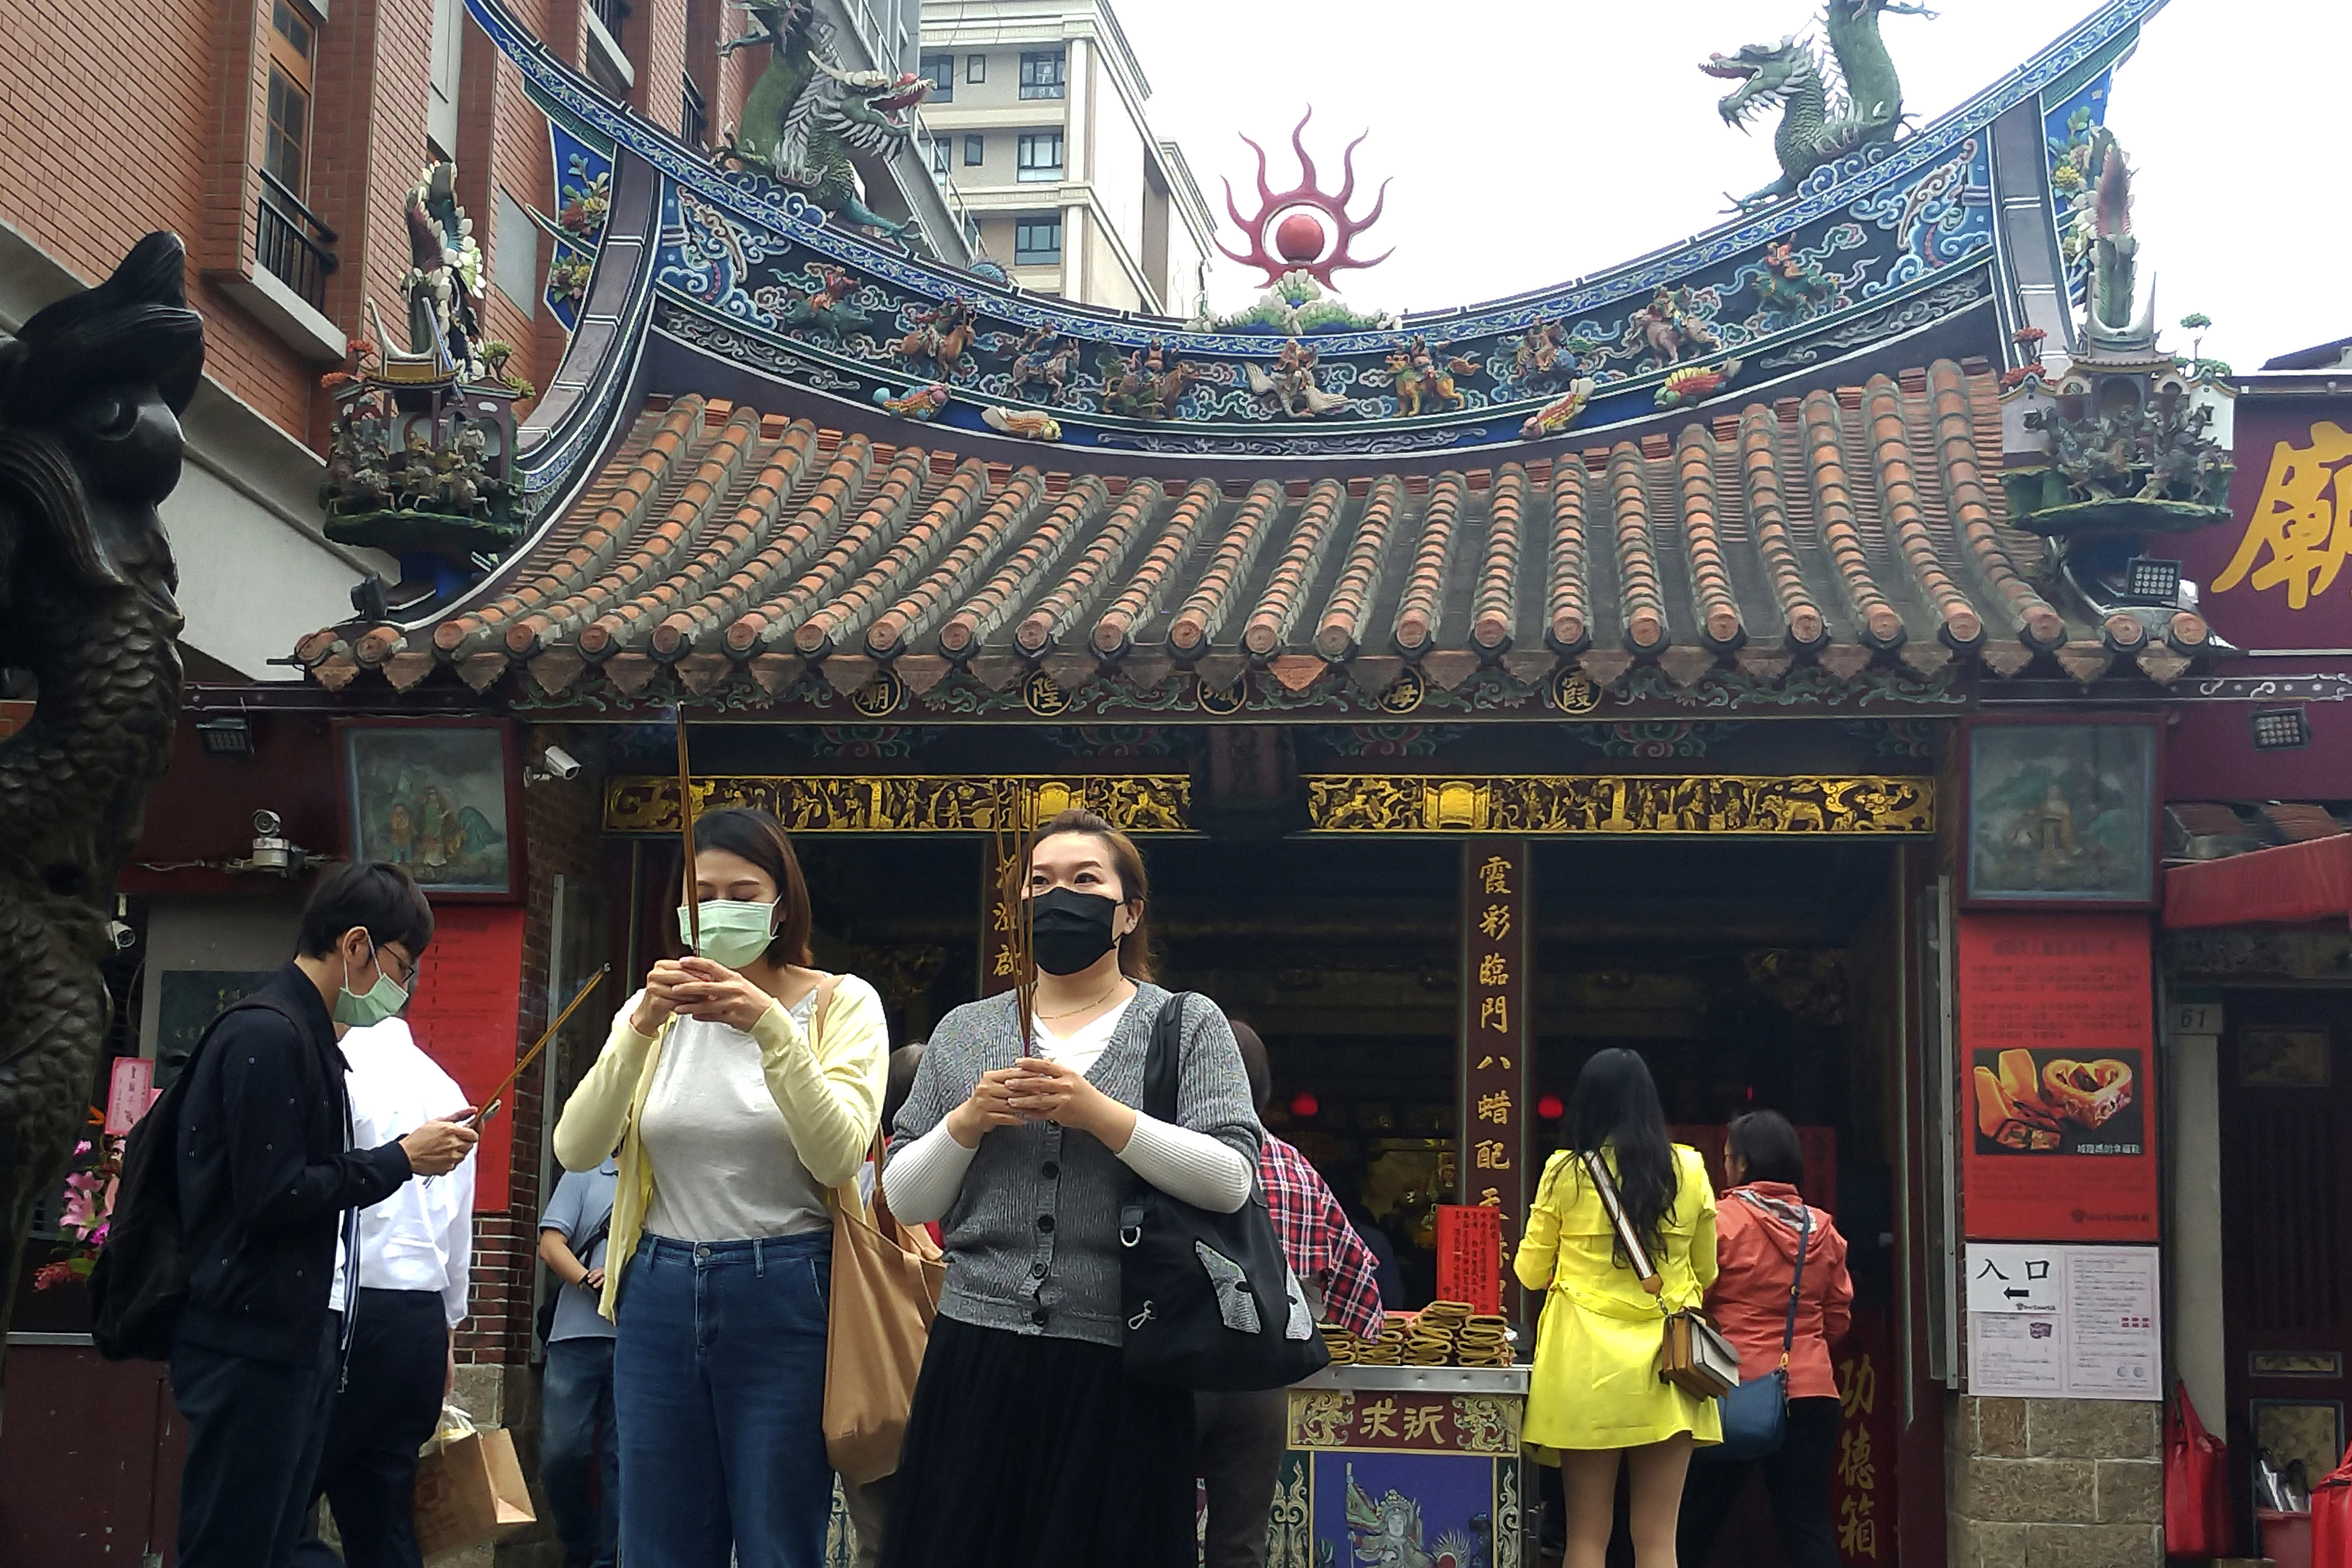 People wearing face masks to help curb the spread of the coronavirus hold insenses to pray at a temple in Taipei, Taiwan, Monday, Oct. 19, 2020. (AP Photo/Chiang Ying-ying)